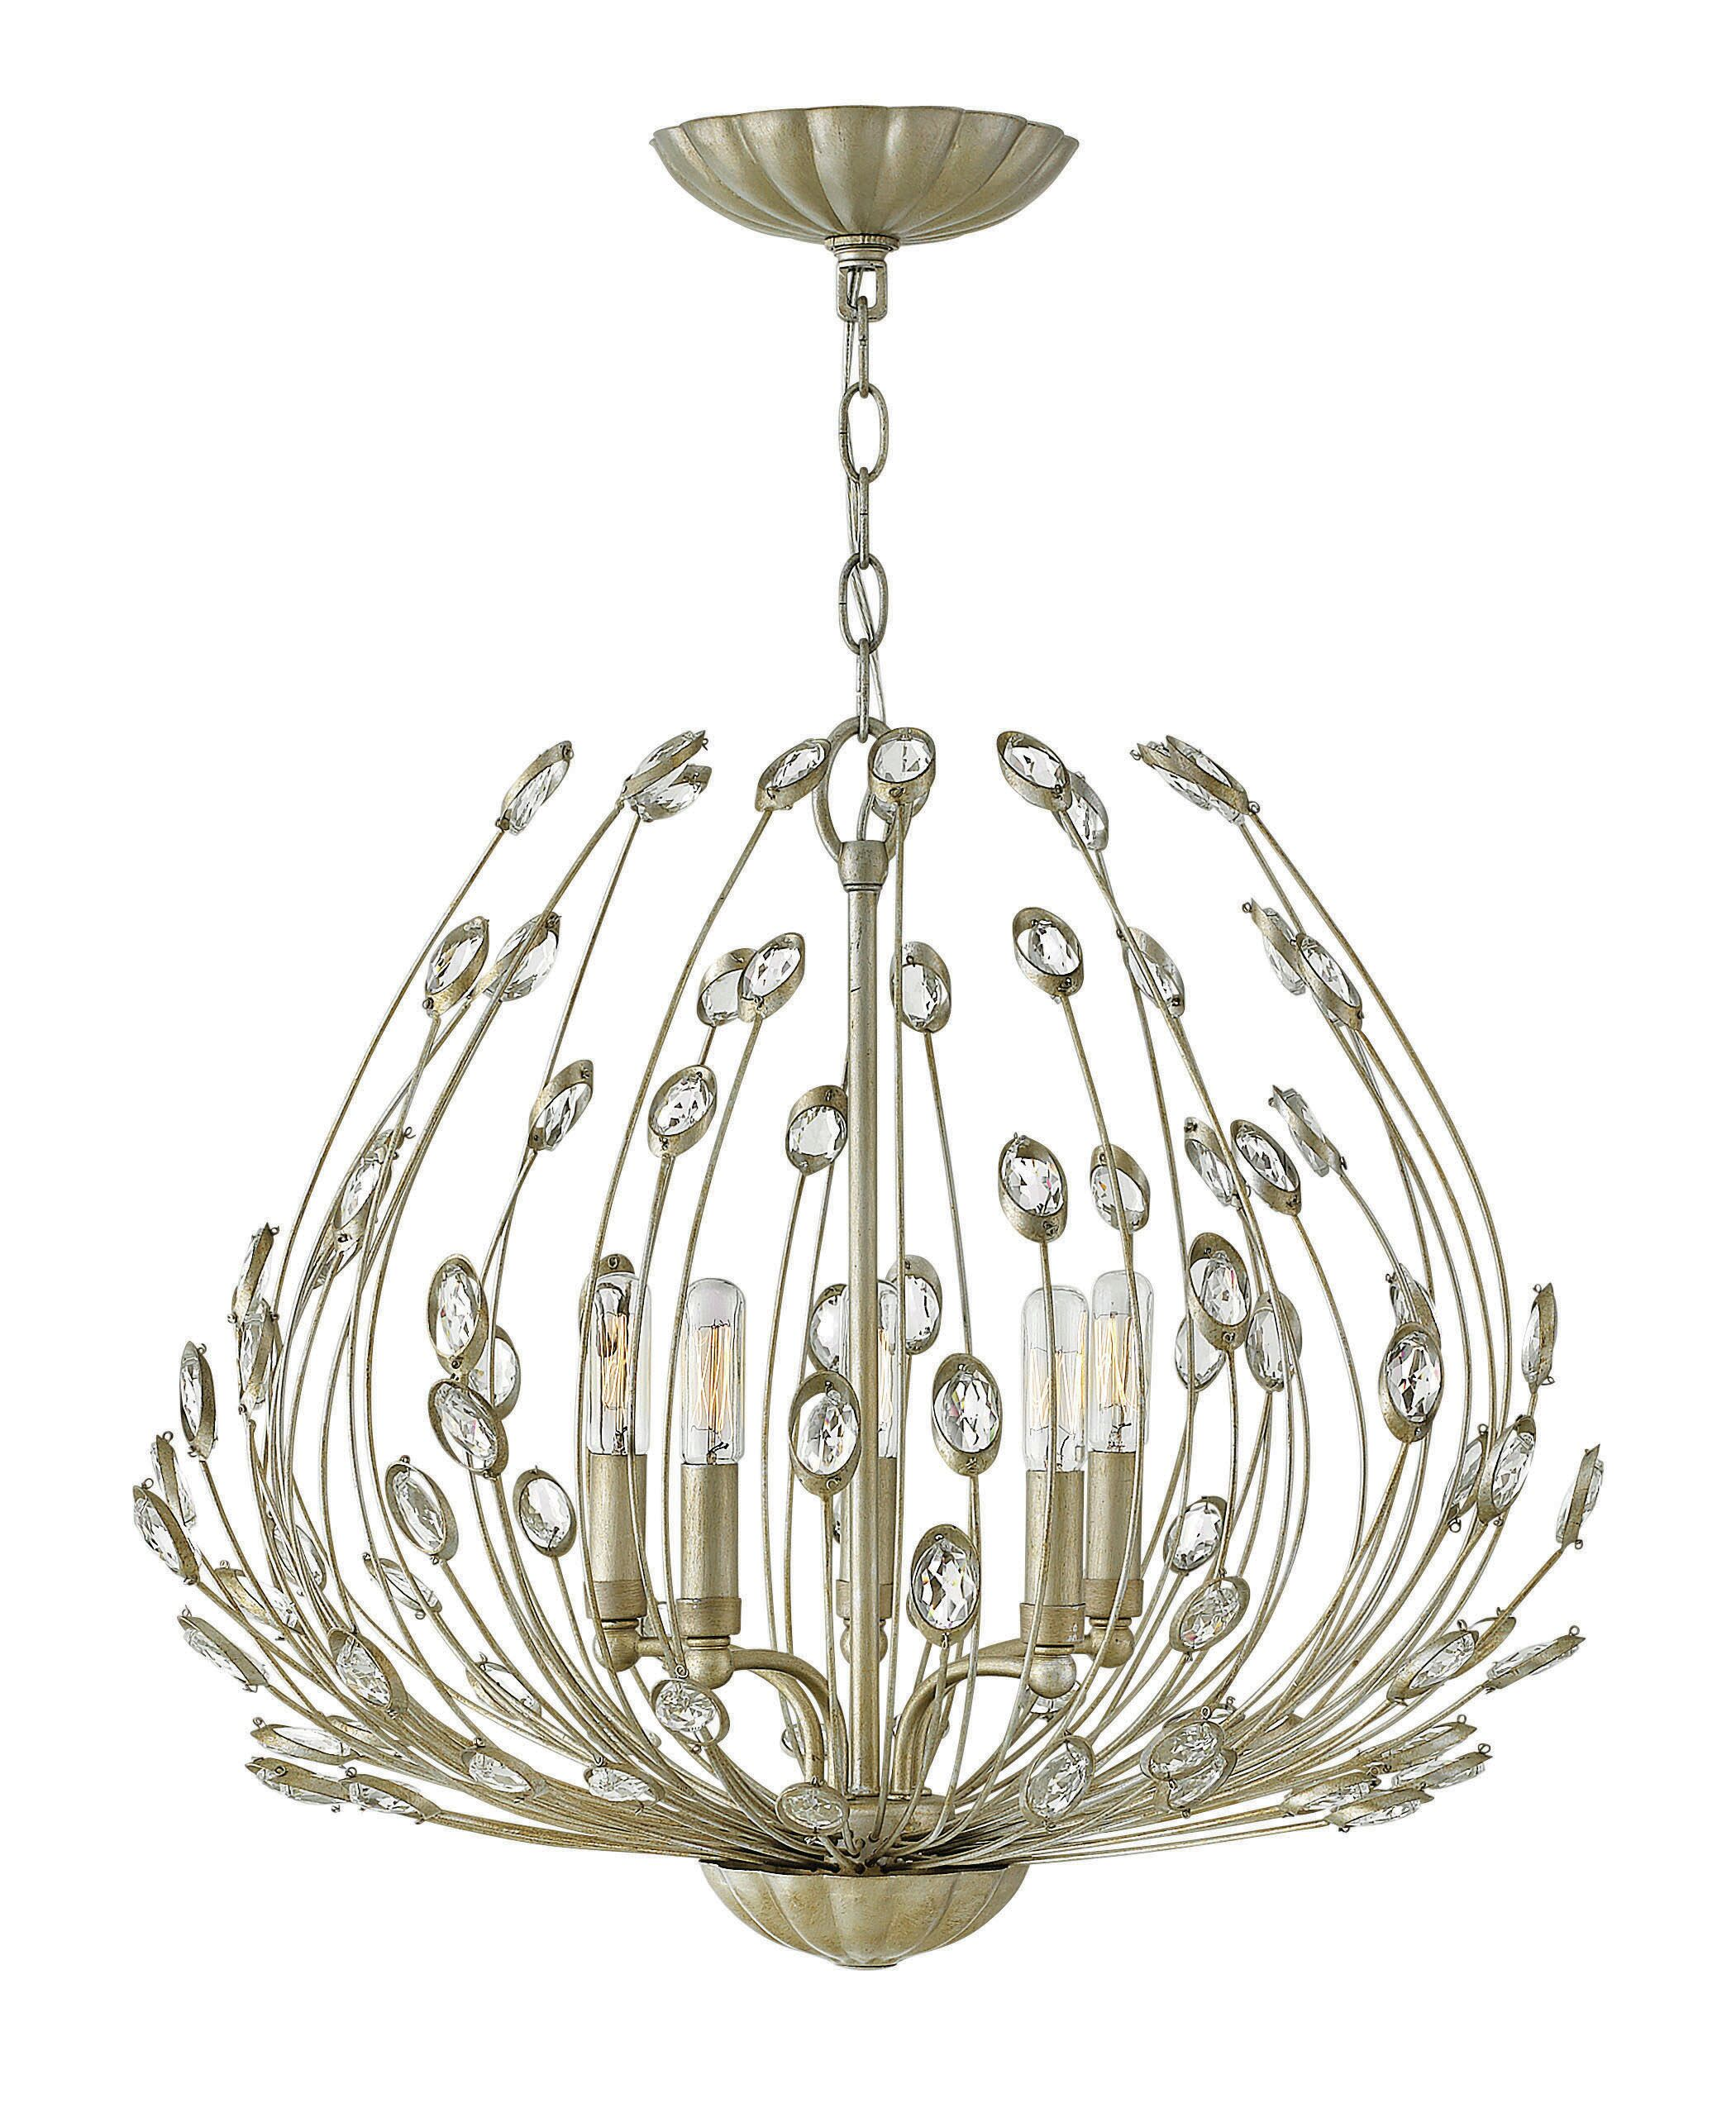 Tulah's multifaceted asymmetrical design is hand crafted with artisan details. Its beauty unfolds in layers, revealing delicately scalloped canopies and dazzling faceted clear crystal embellishments adding the perfect amount of sparkle. Features: -Num...